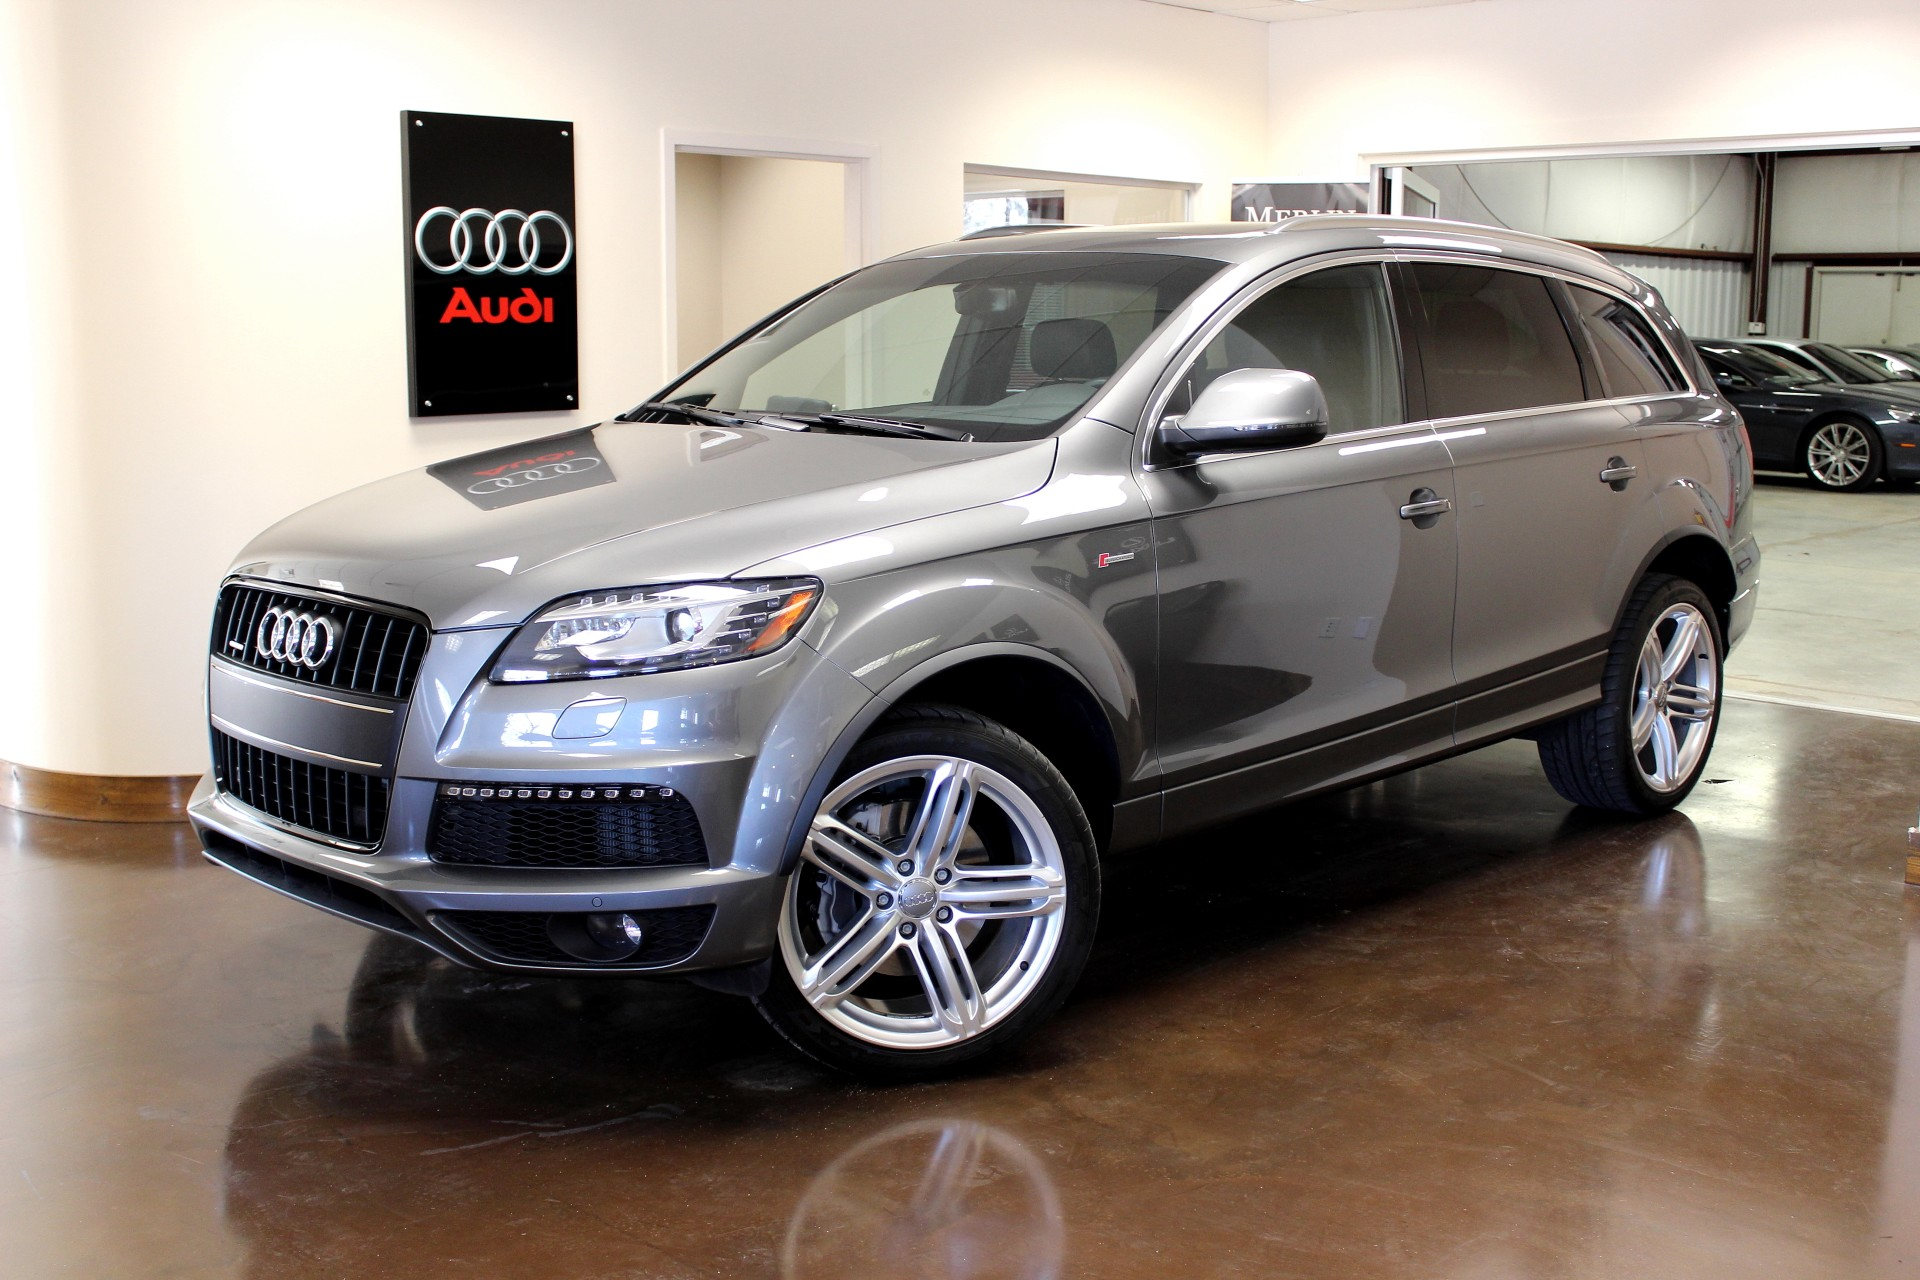 used 2014 audi q7 stock p3020 ultra luxury car from merlin auto group. Black Bedroom Furniture Sets. Home Design Ideas